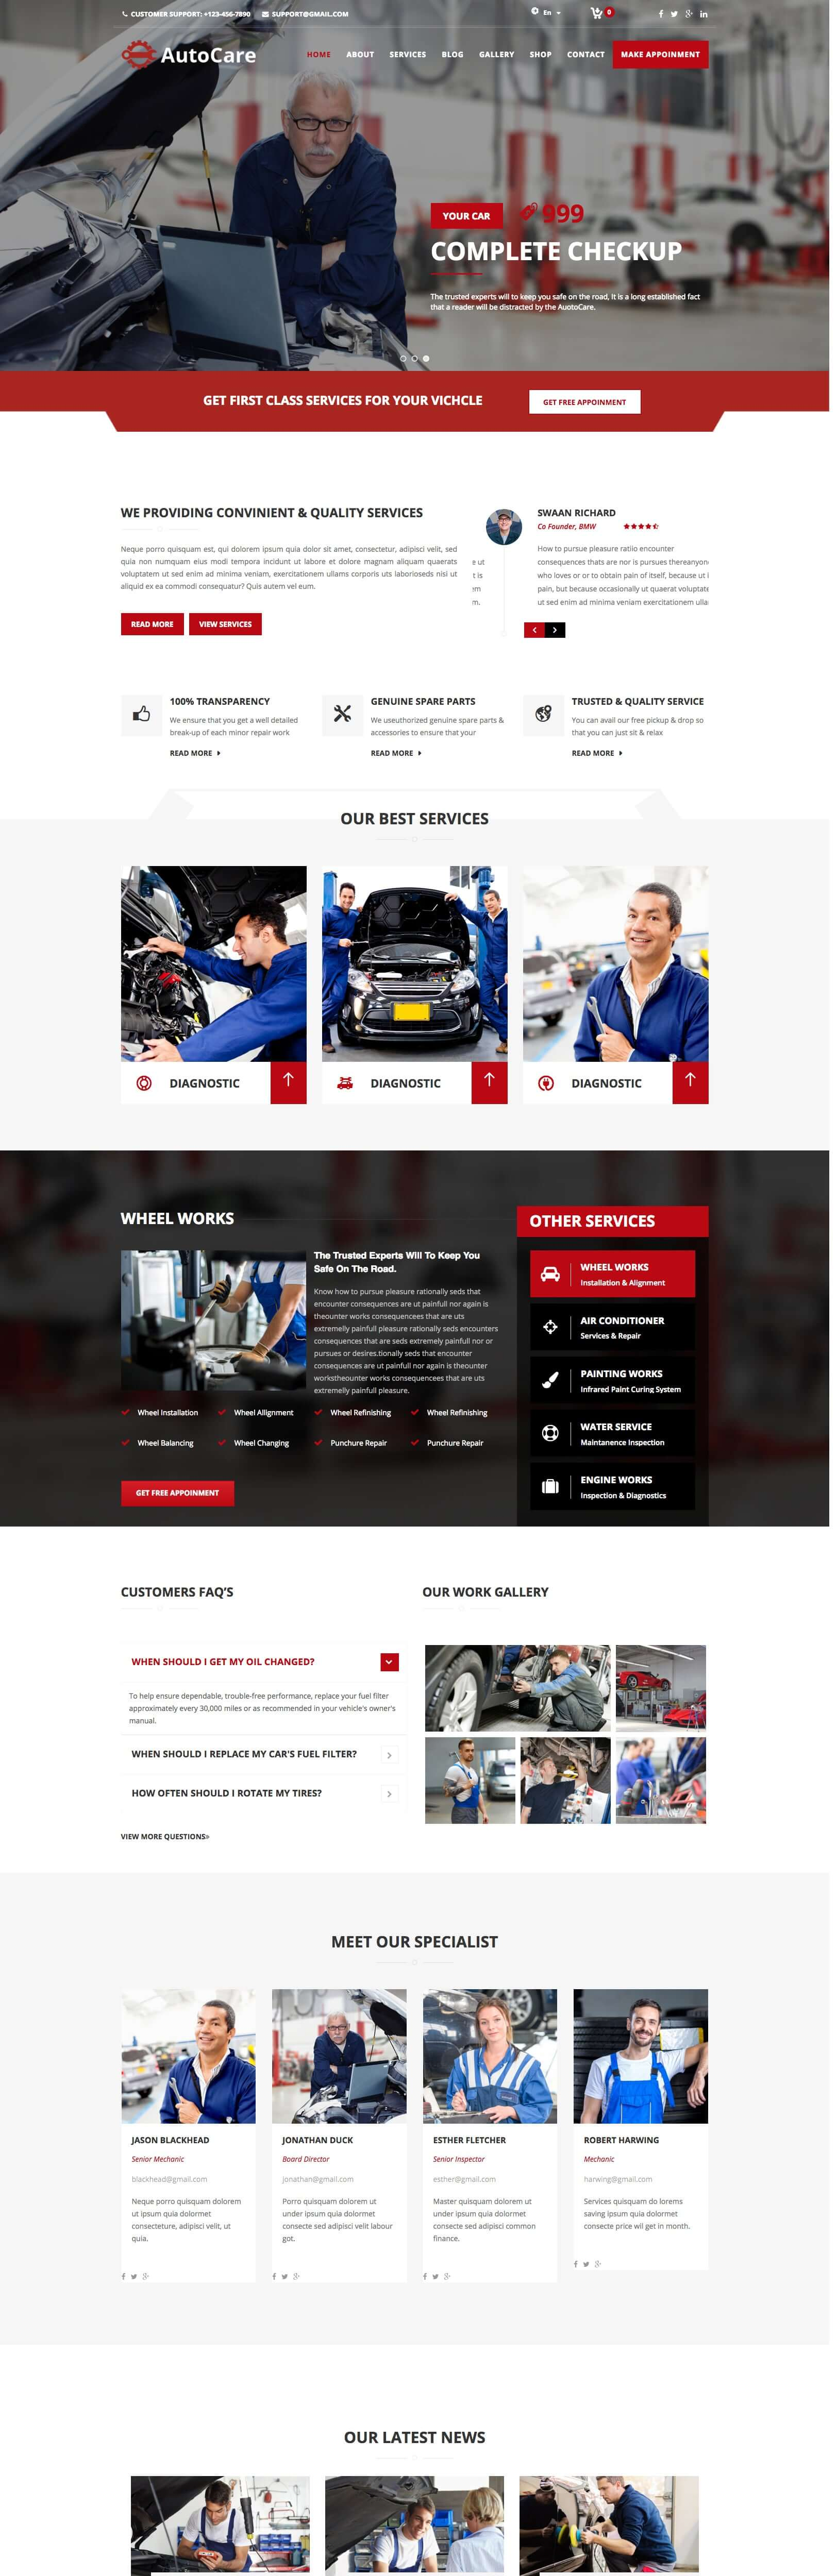 Autocare - Car Mechanic & Auto Repair Centers Joomla Template